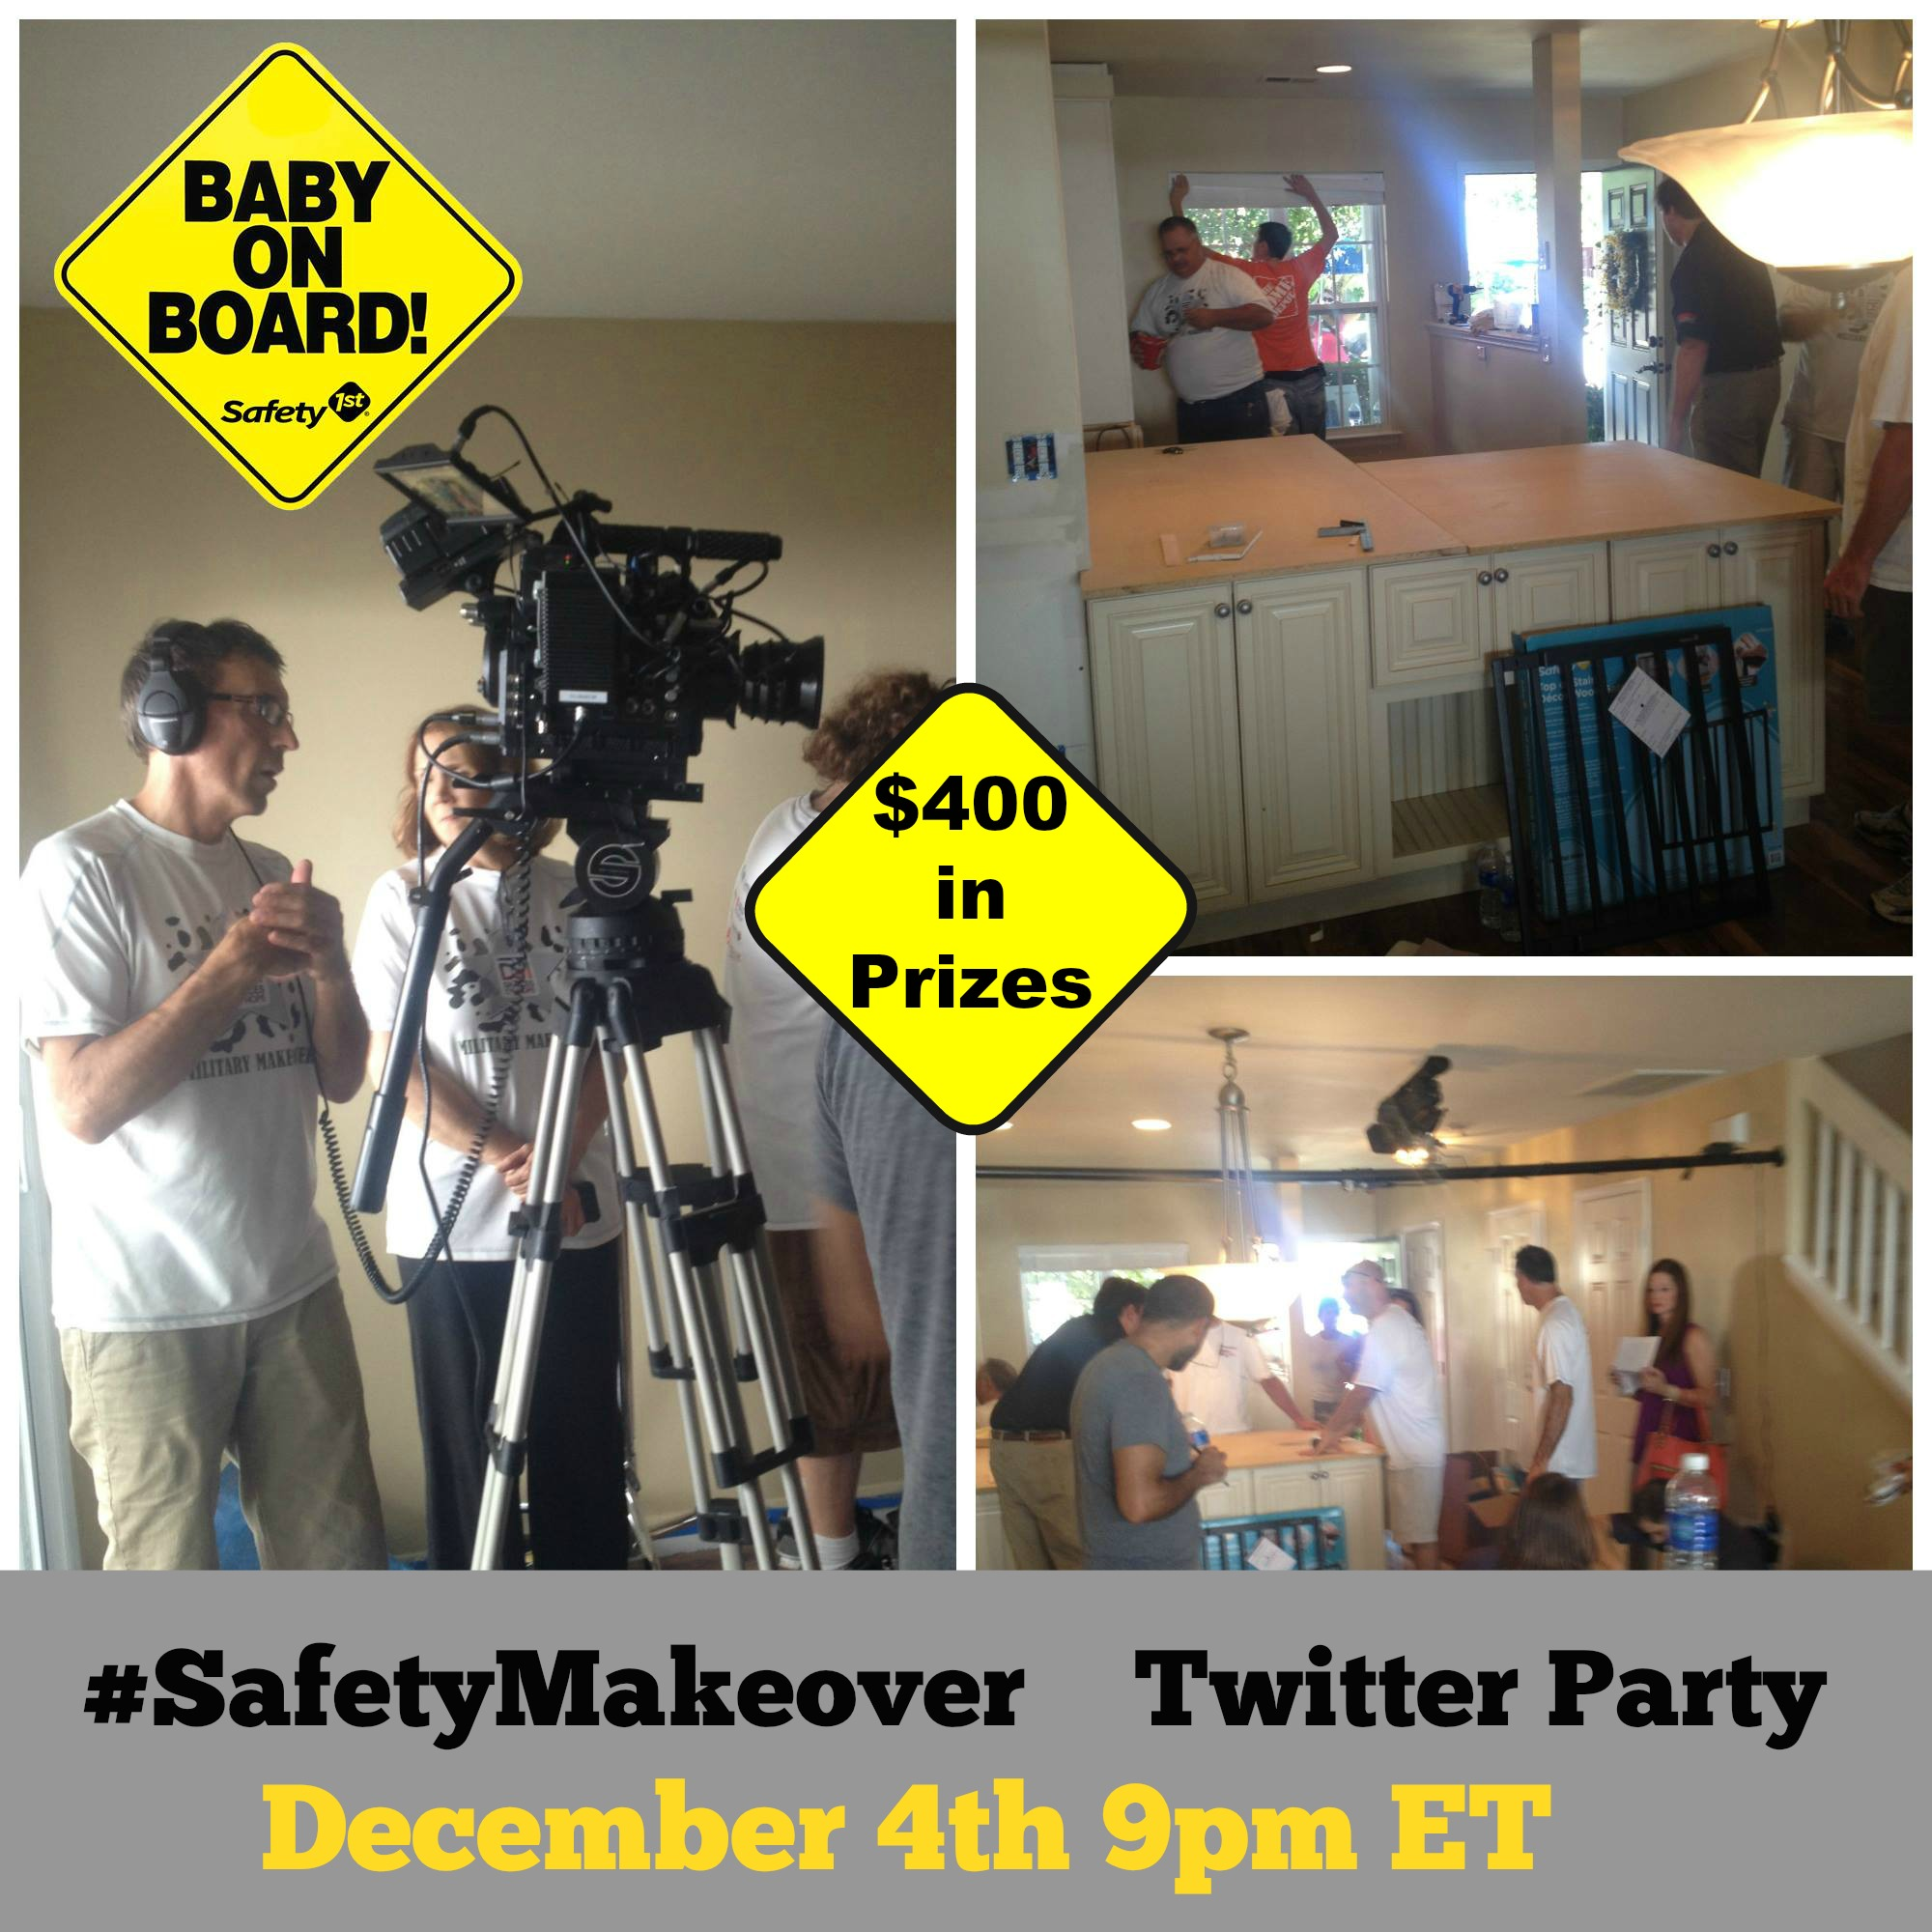 10551588 10152632214419354 4091933034794063923 o 1 Military Makeover Safety 1st Twitter Party!